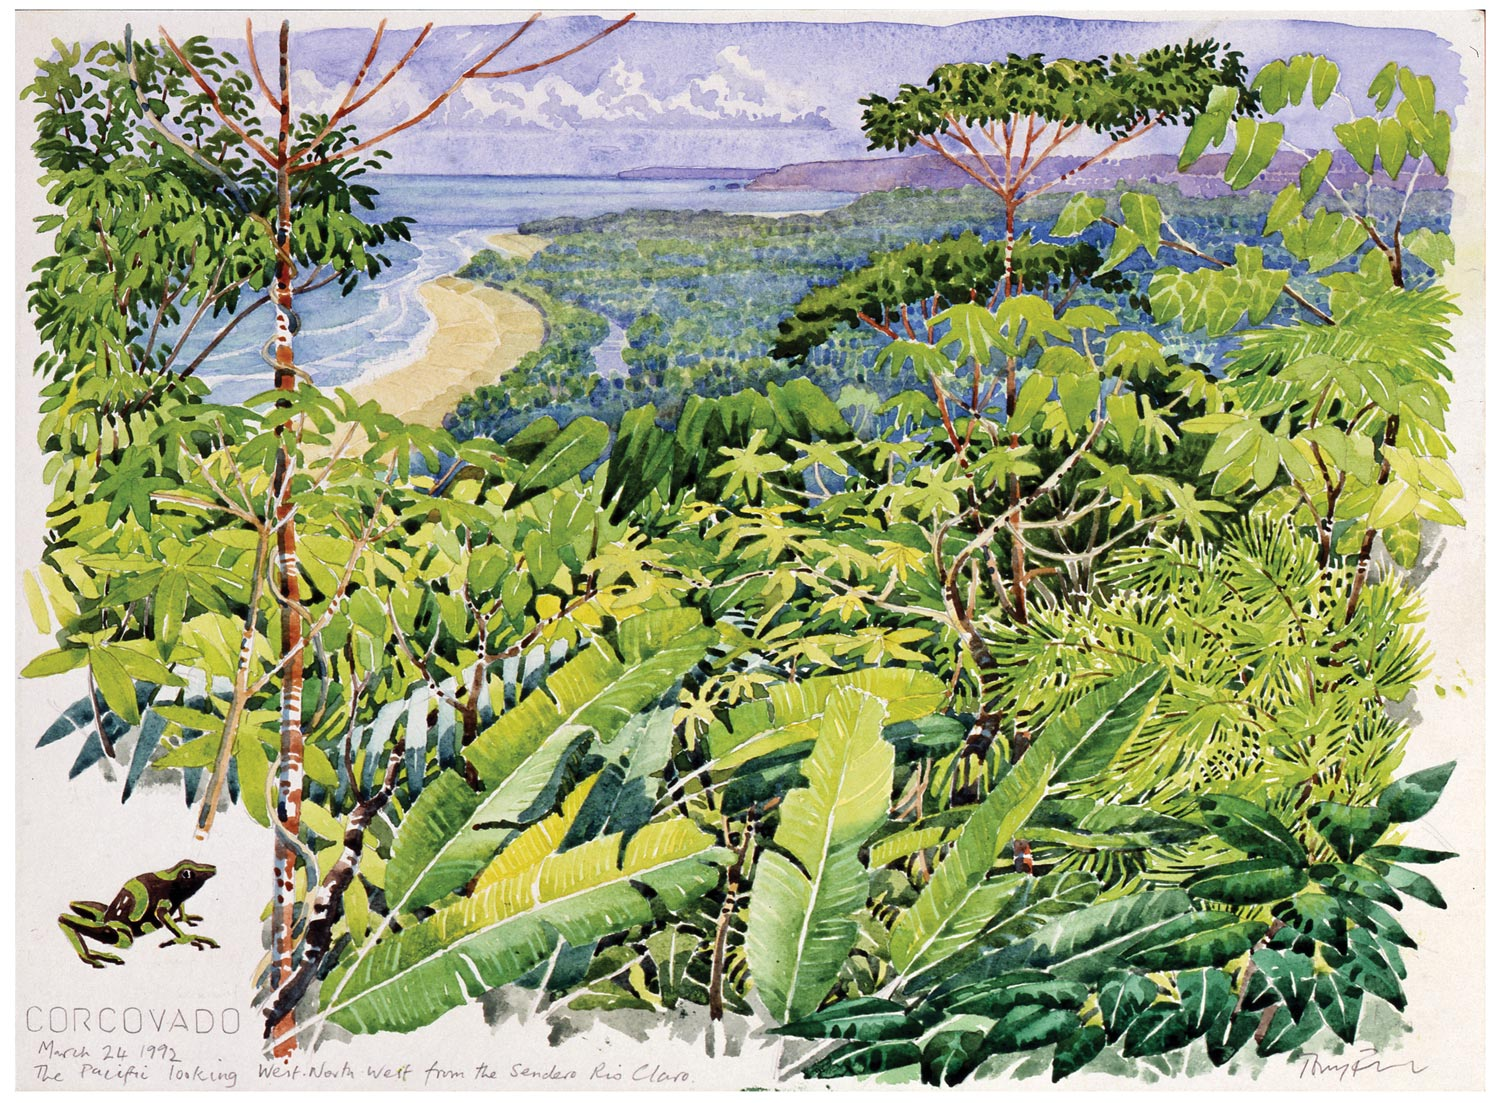 Tony Foster,  Corcovado: March 24, 1992: The Pacific Looking West North West from the Sendero Rio Claro , 1992 | Watercolor and graphite on paper | 10 x 13 5/8 in. | 1991.1.17